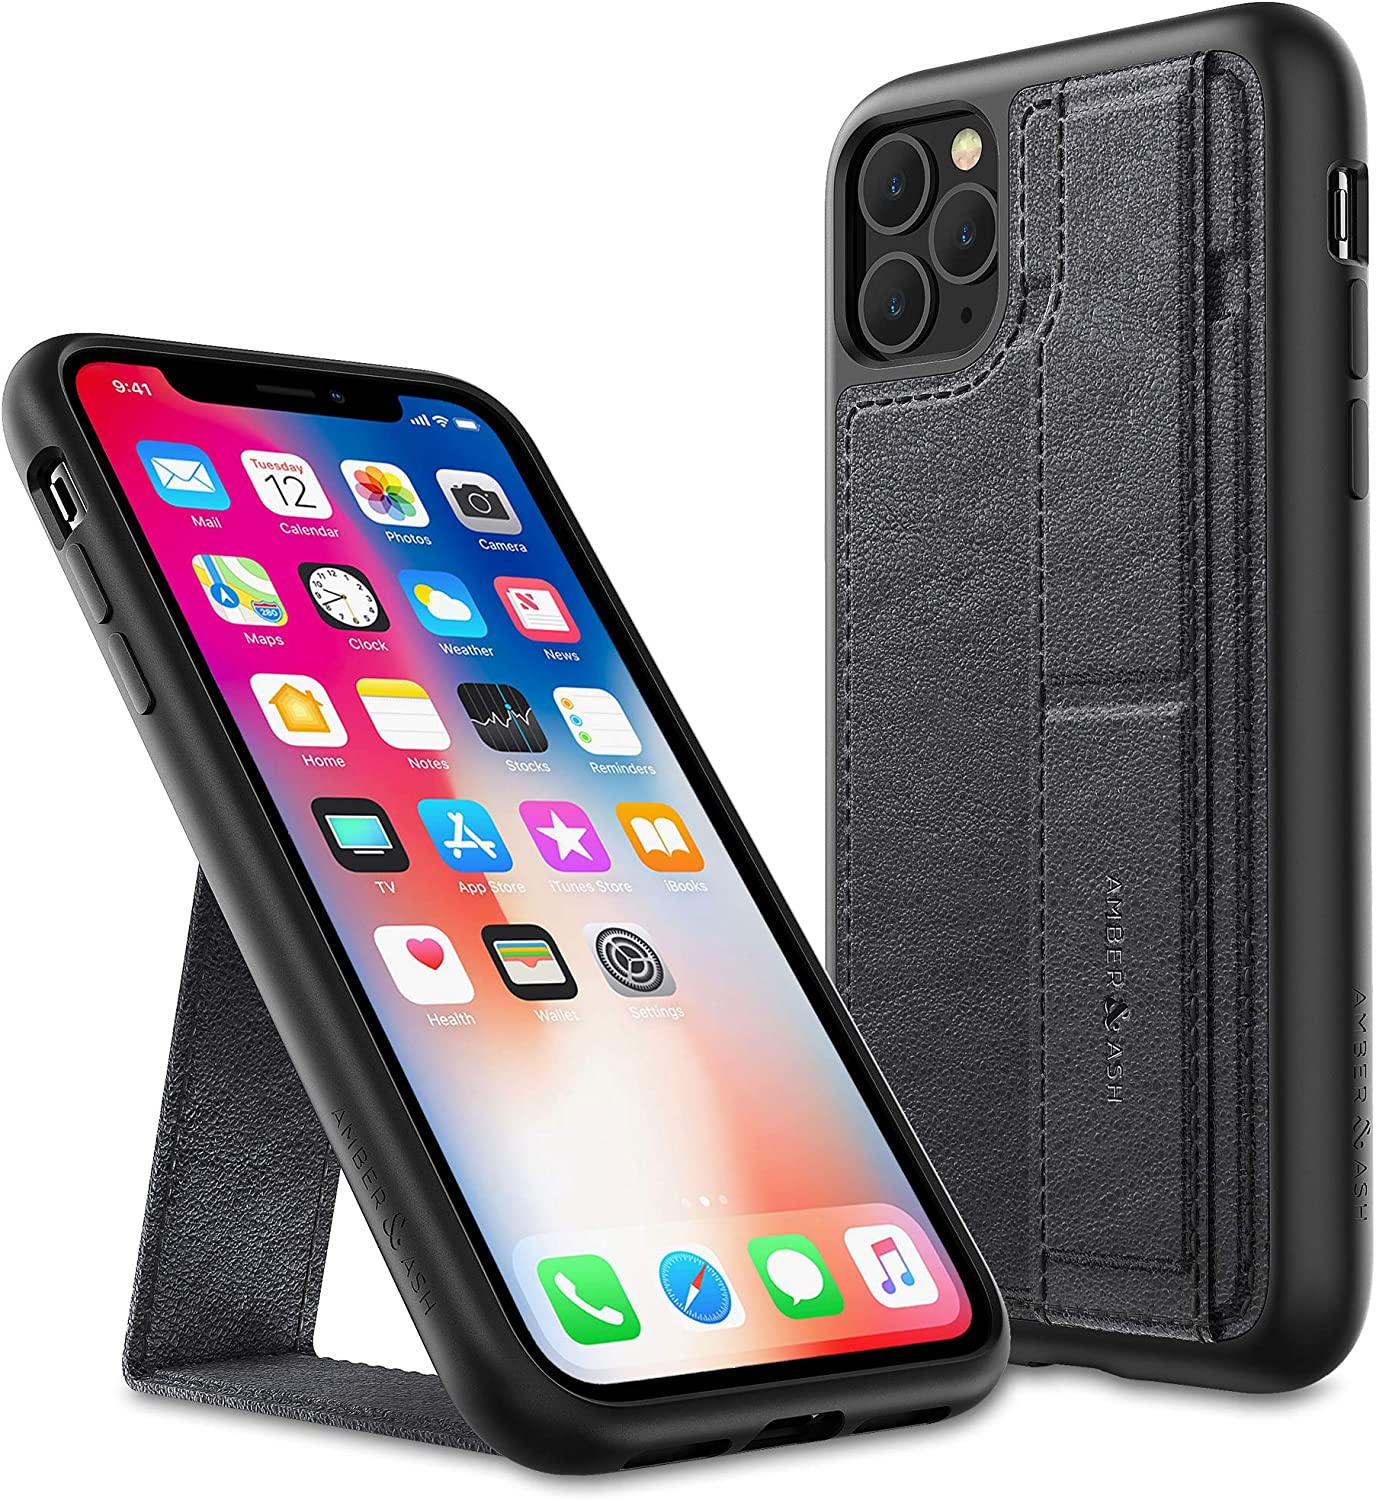 Amber & Ash Strap Stand Case for iPhone 11 Pro (5.8in) - Vertical and Horizontal Kickstand - Hand Grip - Reinforced Drop Protection - Flexible TPU - Matte Black